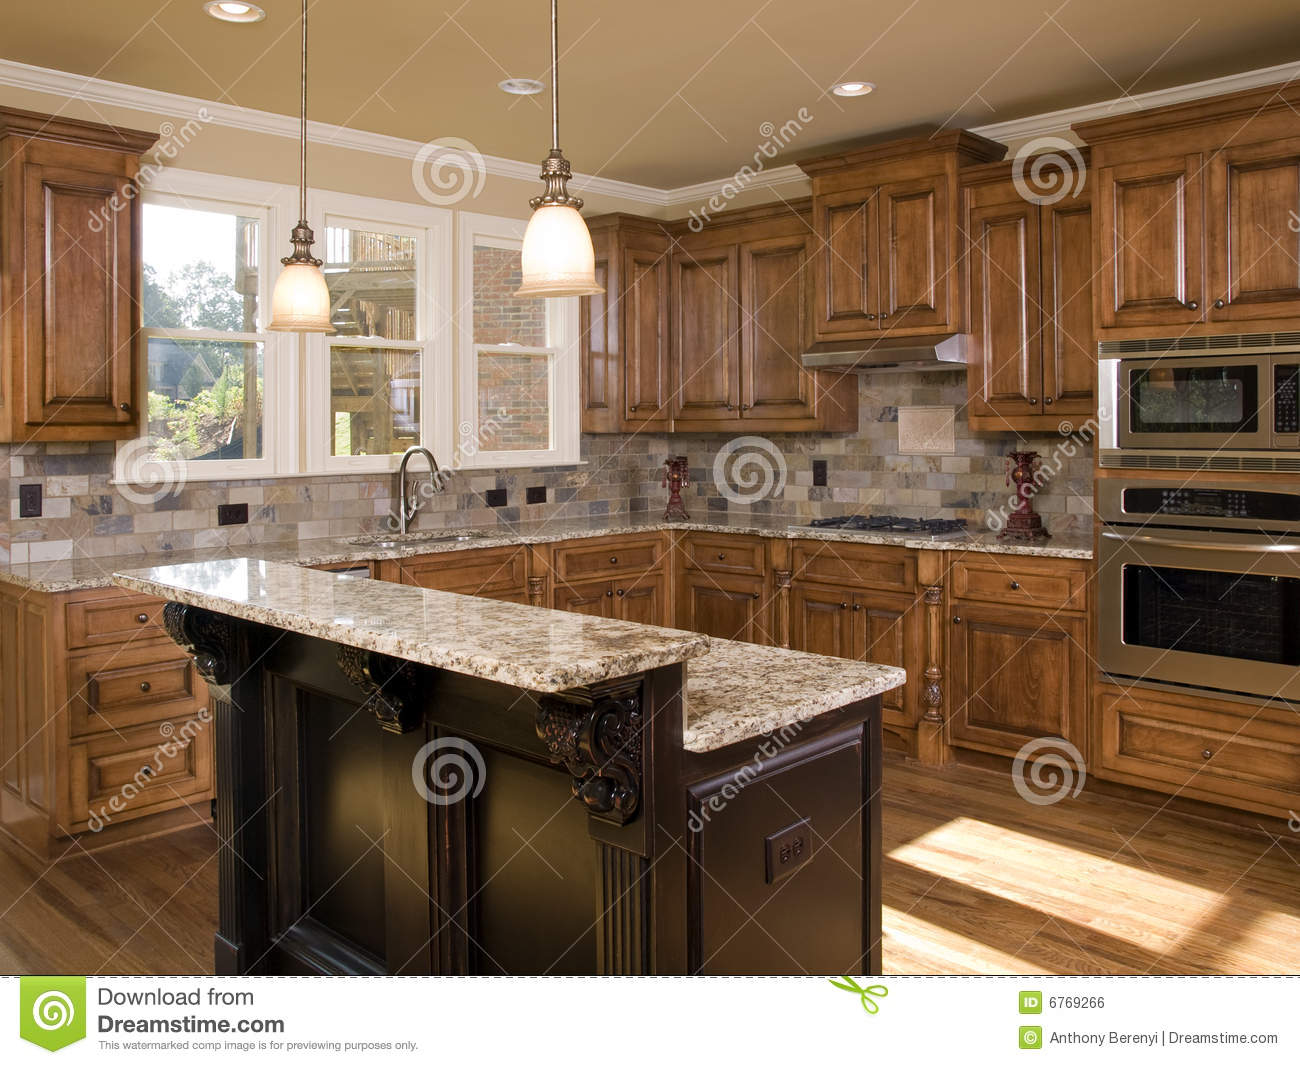 Luxury Kitchen Two Tier Island Stock Photo  Image 6769266